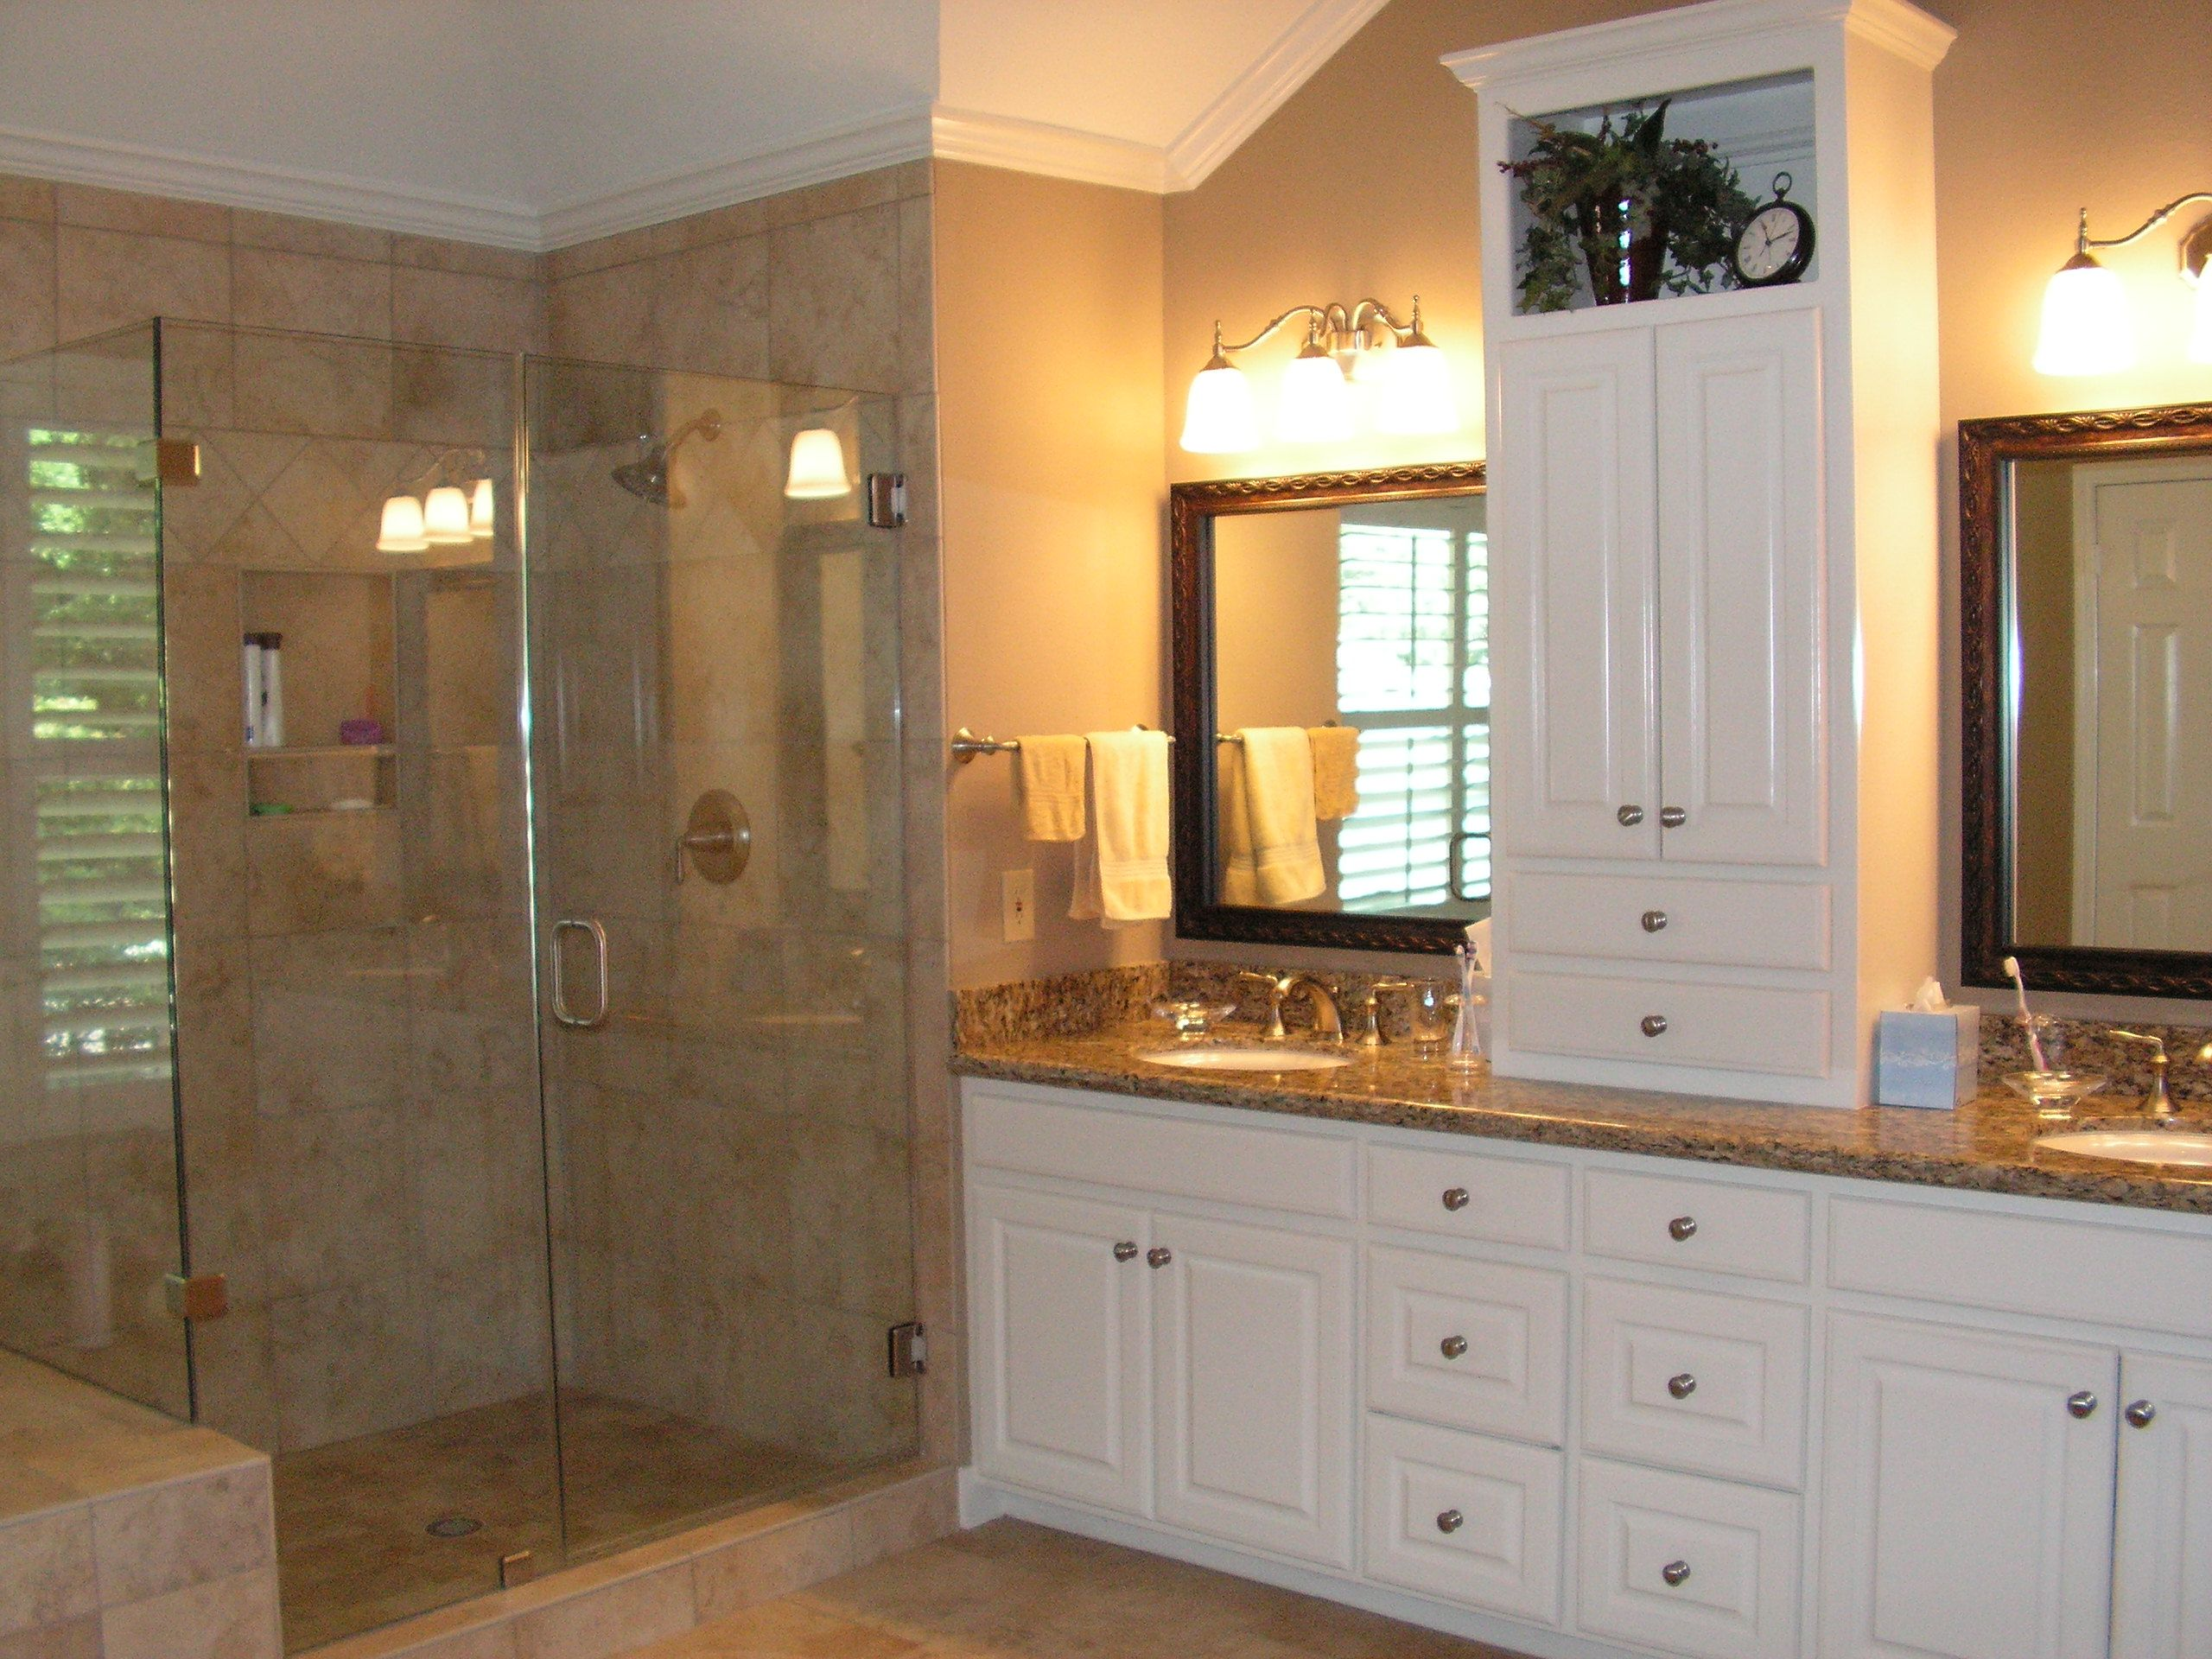 Bathroom remodel showing new heavy frameless shower enclosure and two shelf recessed shower cad